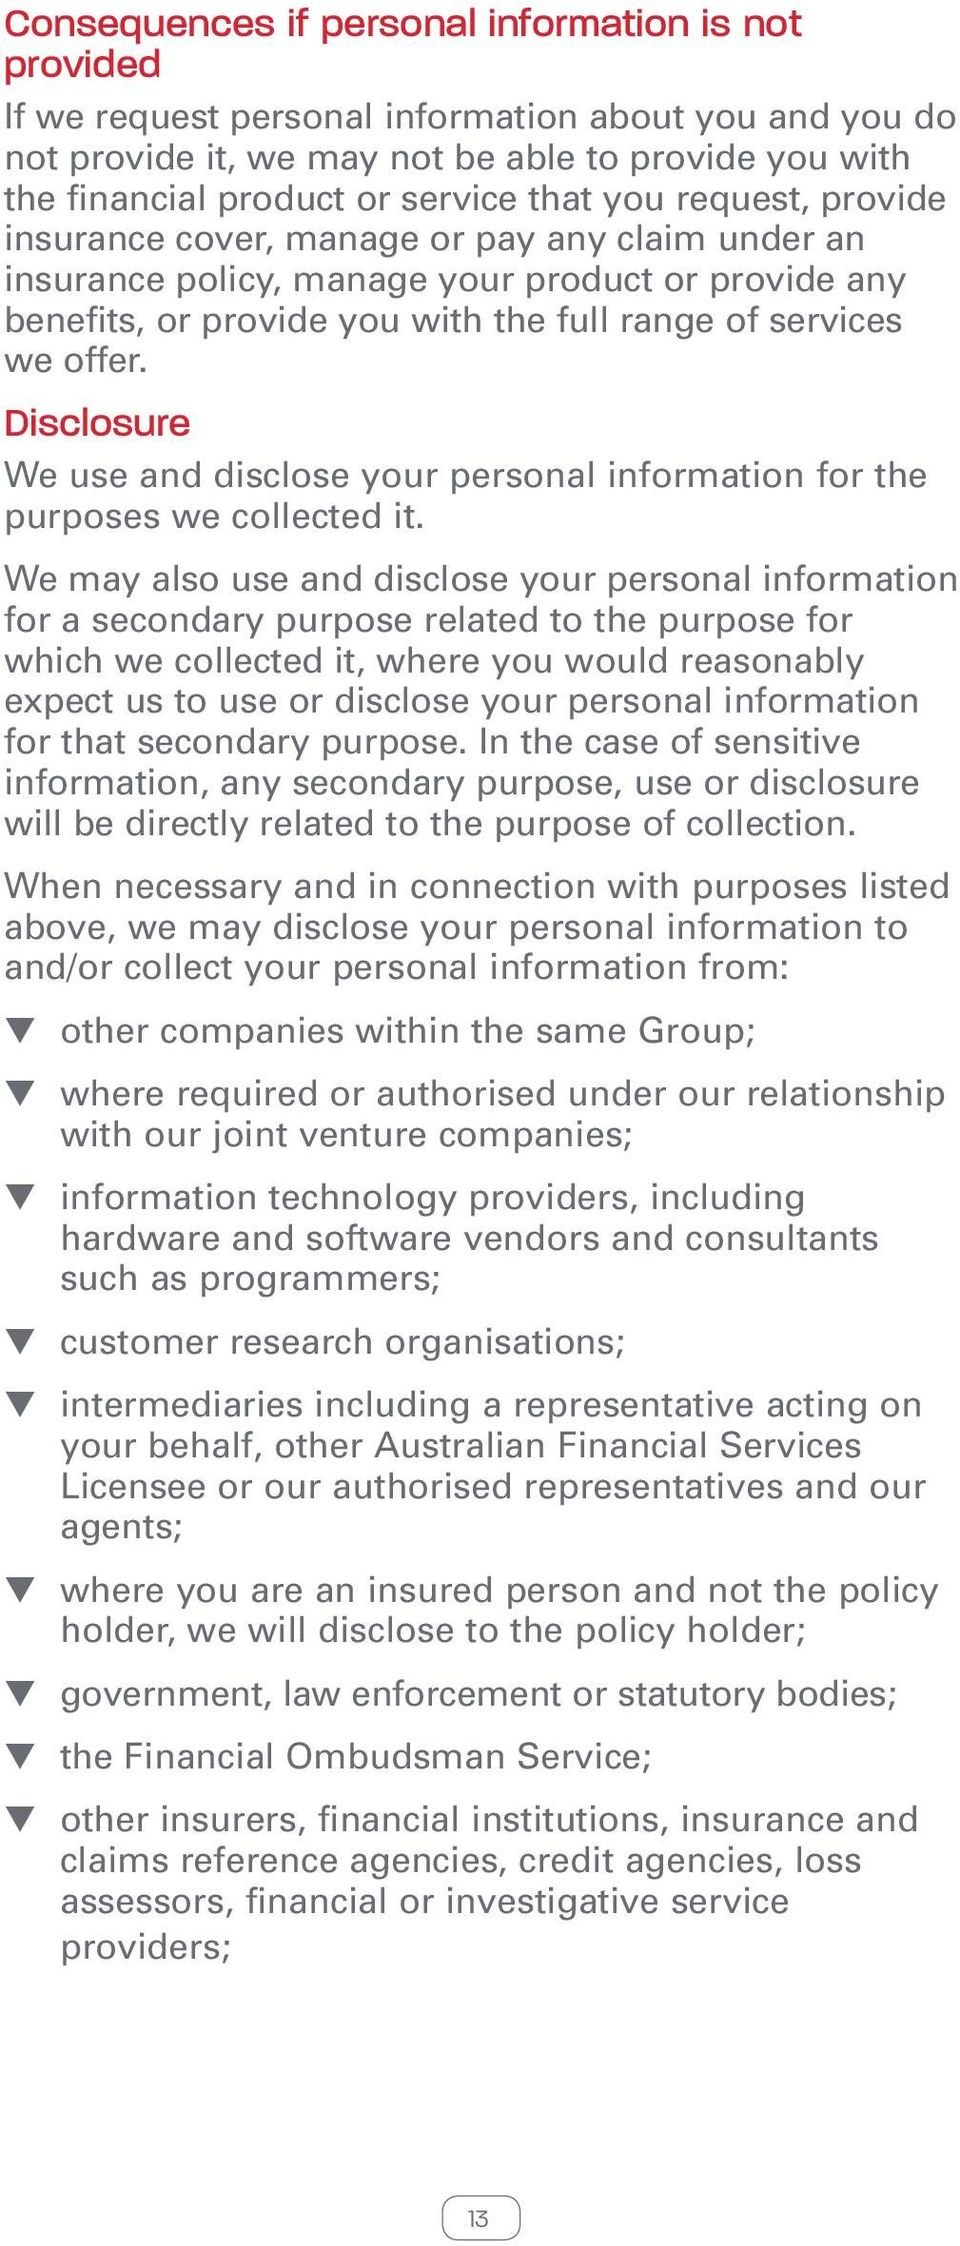 Disclosure We use and disclose your personal information for the purposes we collected it.